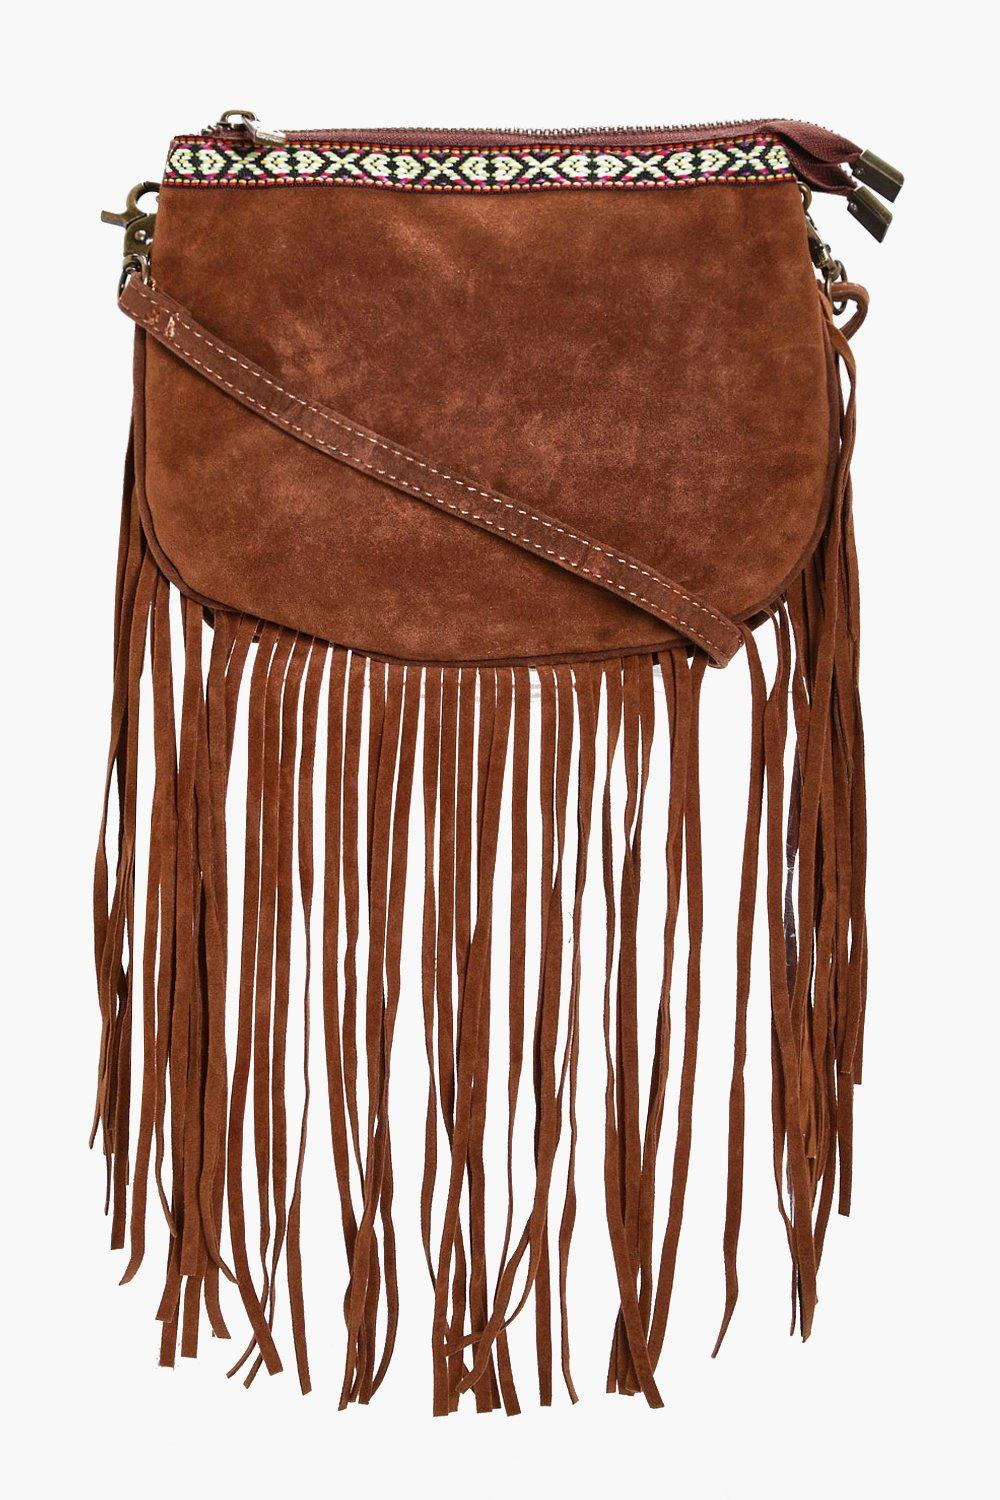 Aztec Trim Fringe Cross Body - tan - Lianne Aztec